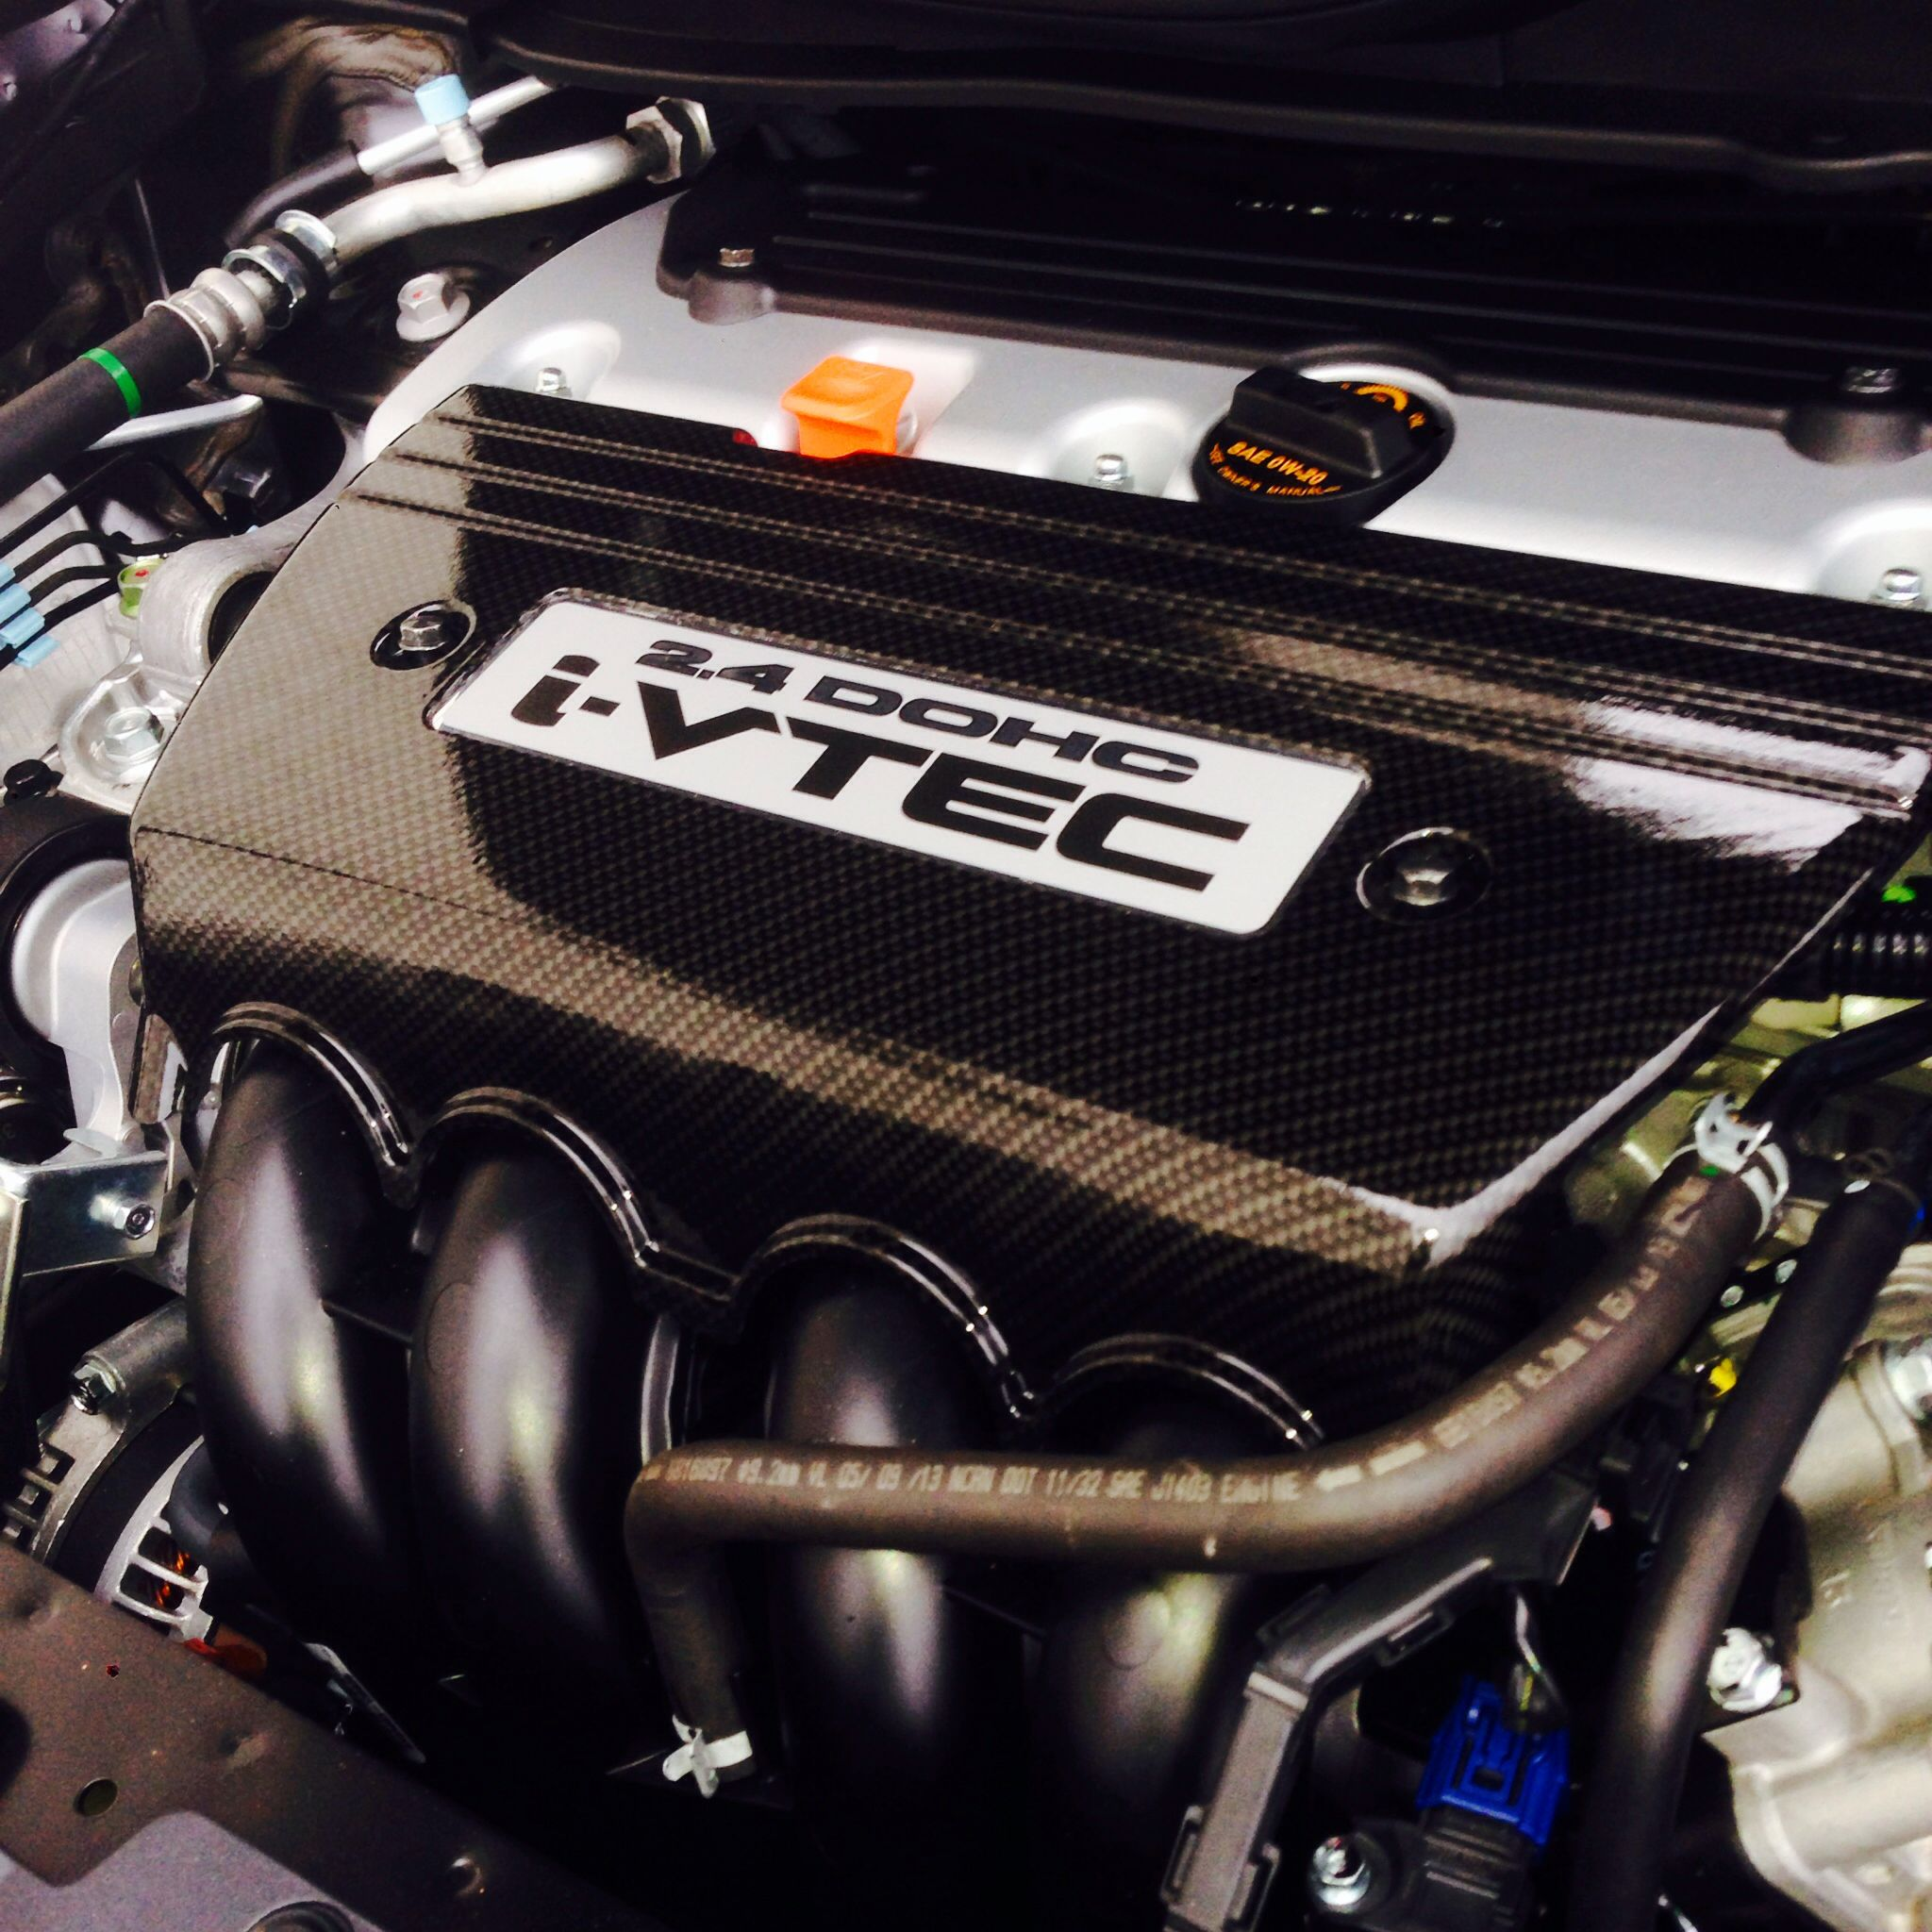 Carbon Fiber hydro dipped intake manifold cover by Voyles